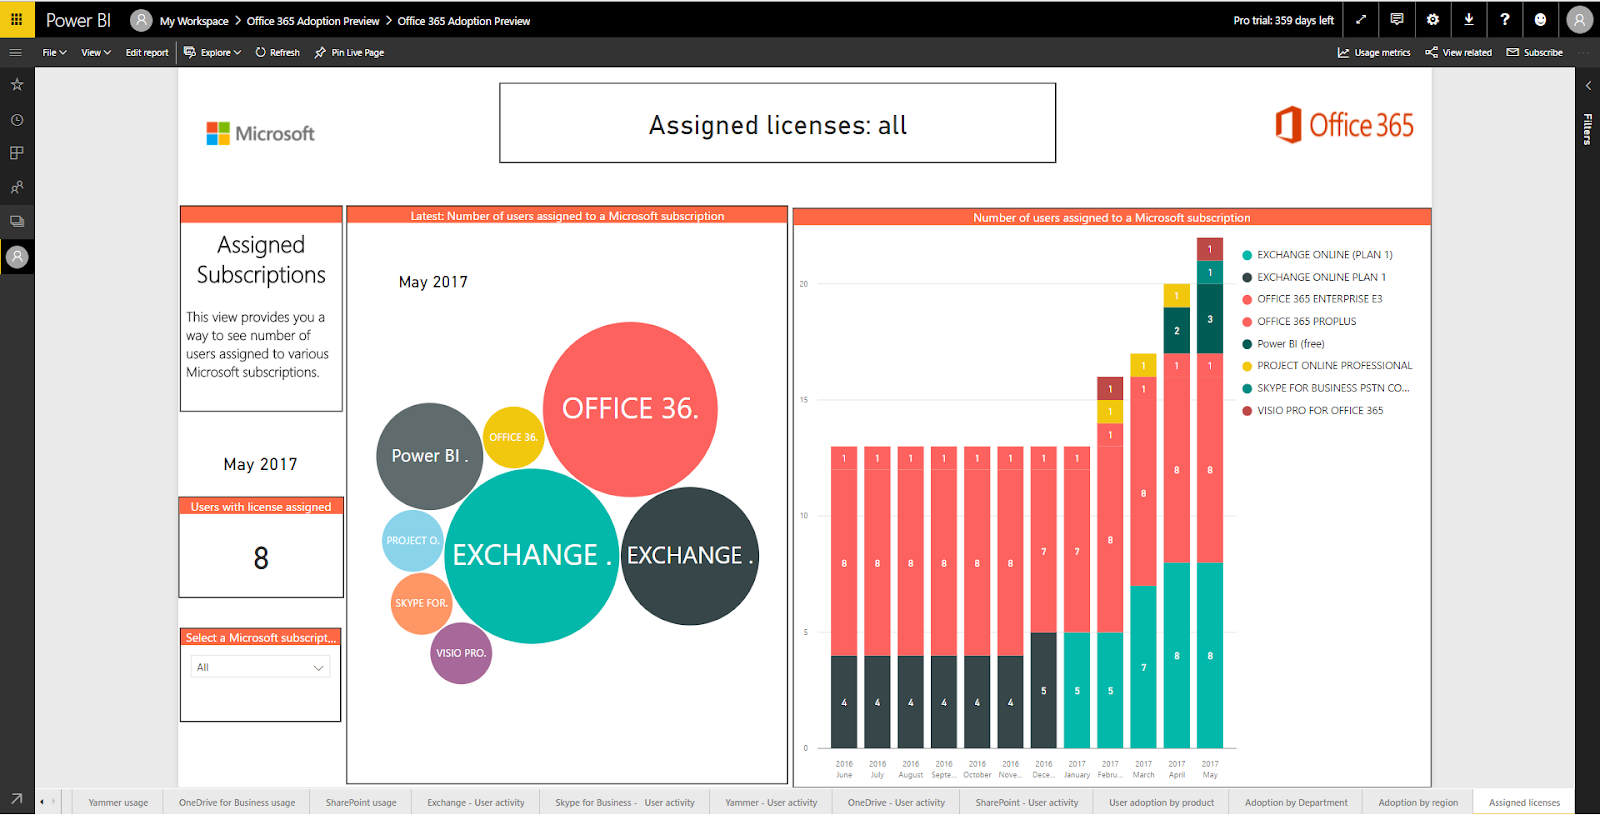 Office 365 Consumption Report - Assigned Licenses